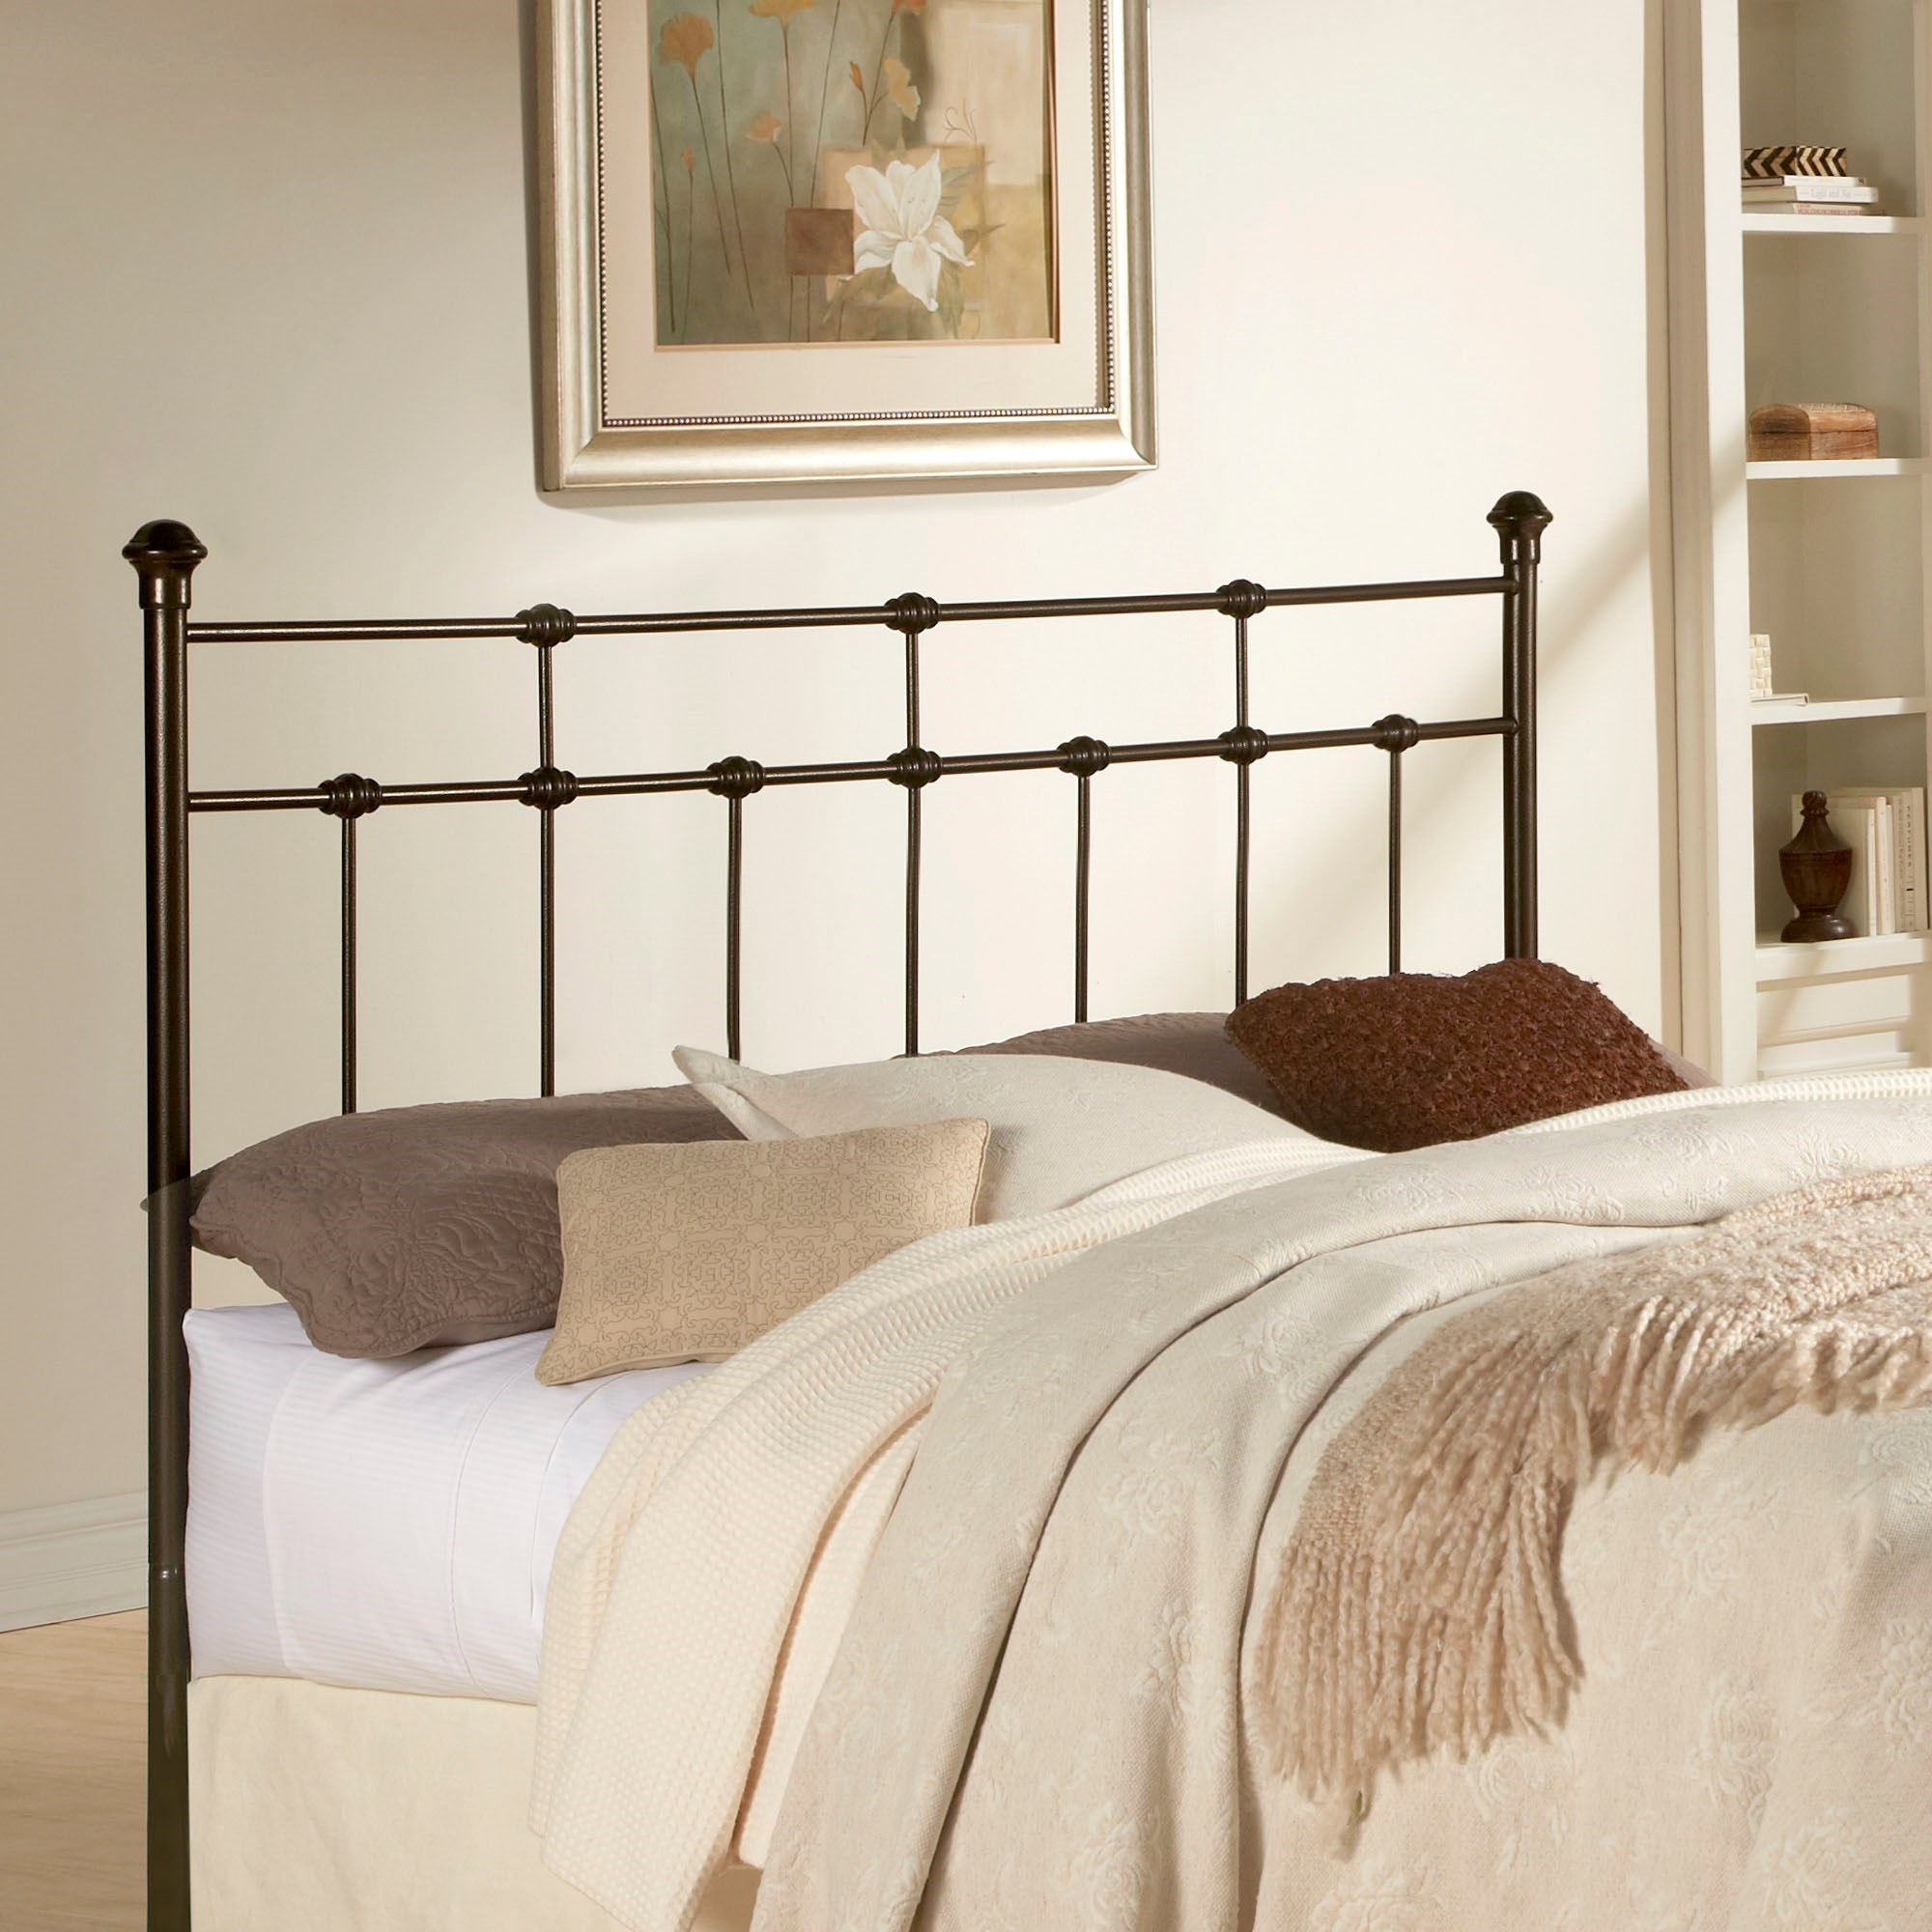 Fashion Bed Group Metal Beds B42145 Queen Dexter Headboard